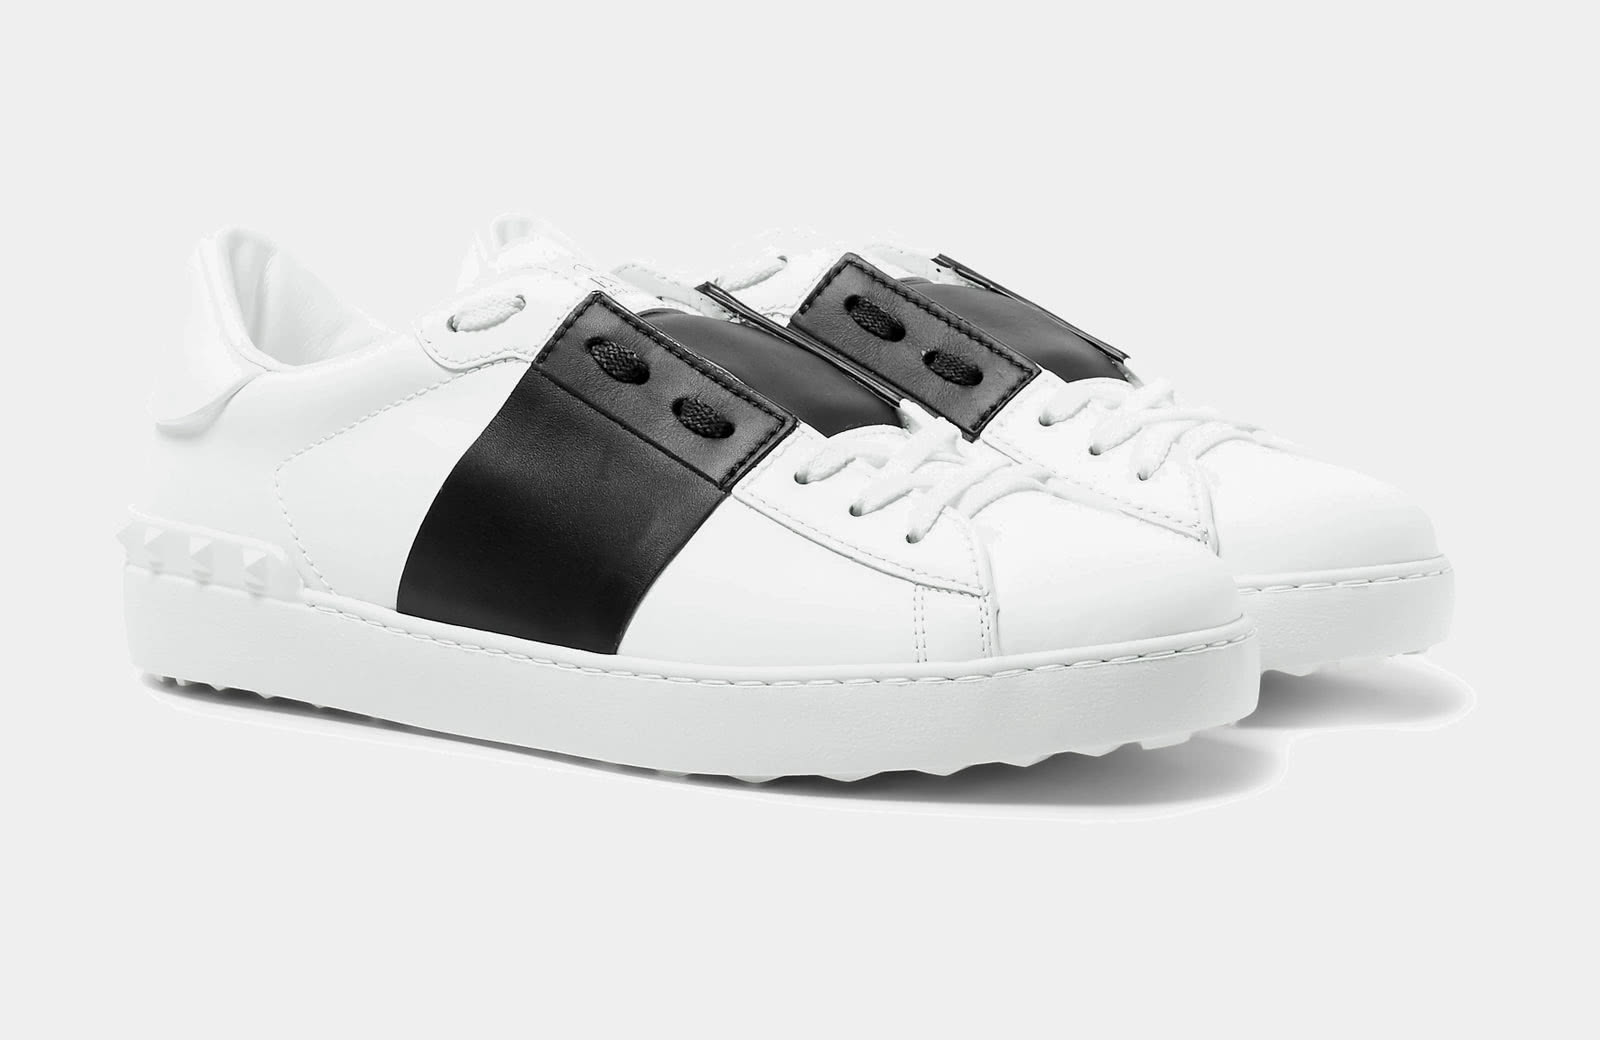 20 Luxury Sneakers For Men To Master Casual Smart (2019)